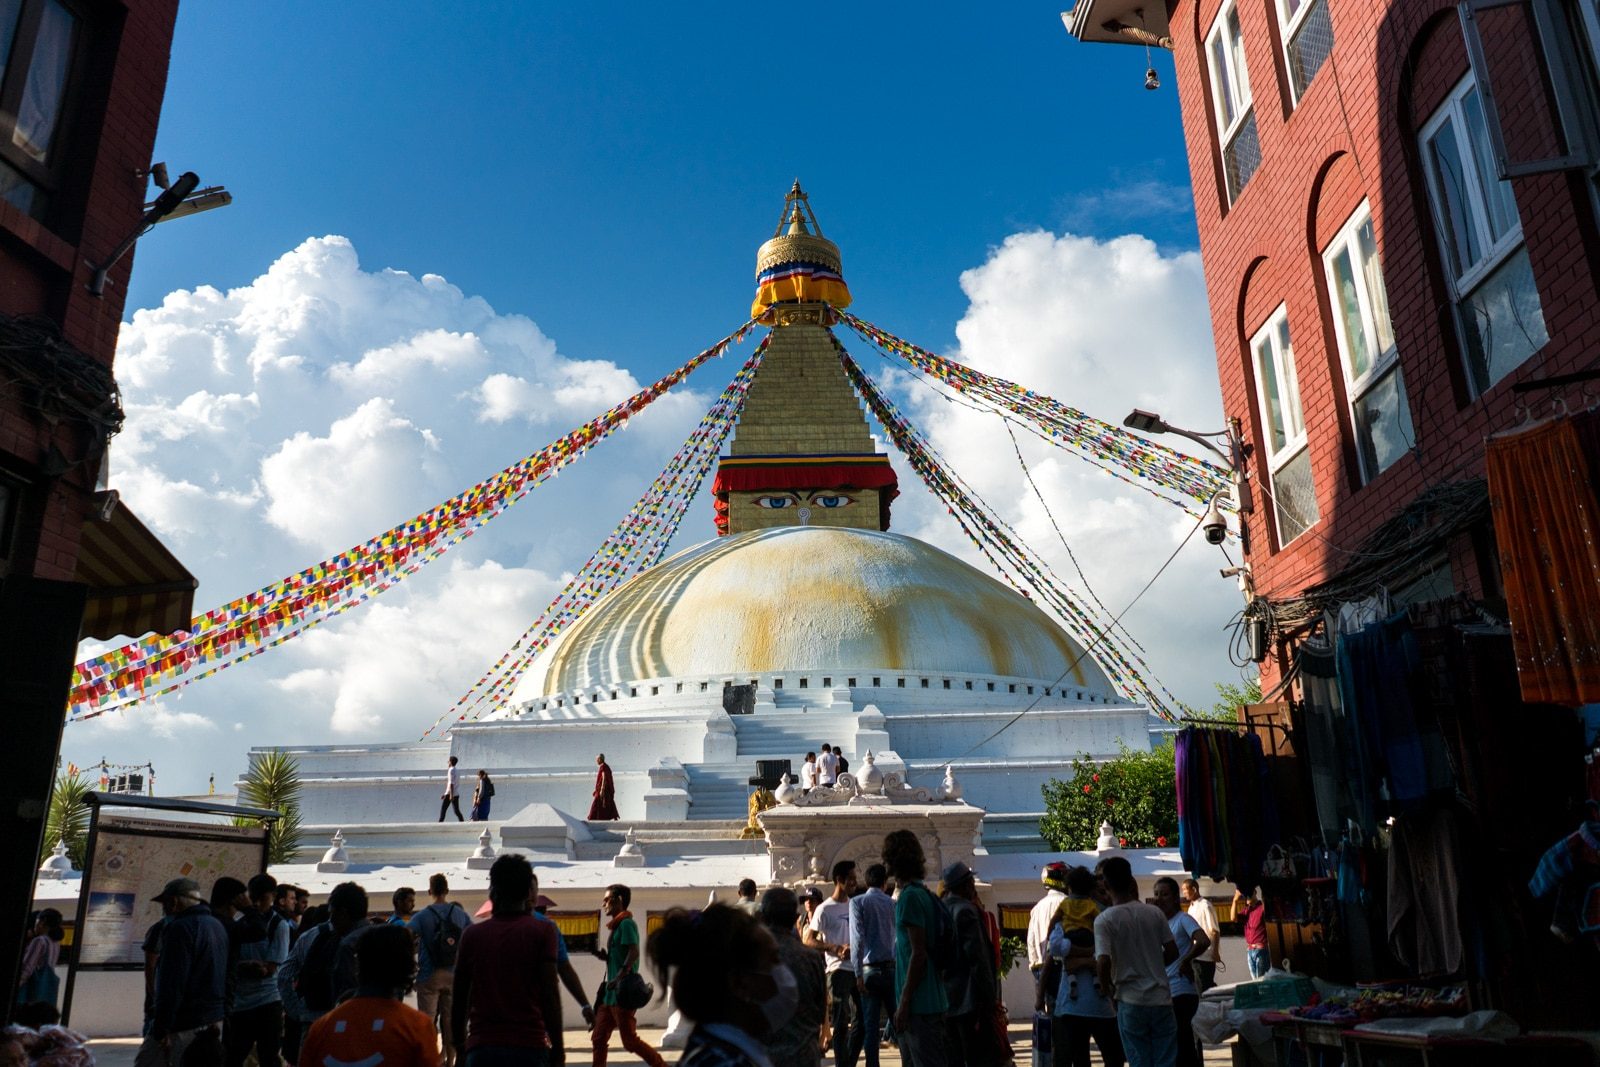 Traveling during monsoon in Nepal - Boudhanath stupa in Kathmandu - Lost With Purpose travel blog